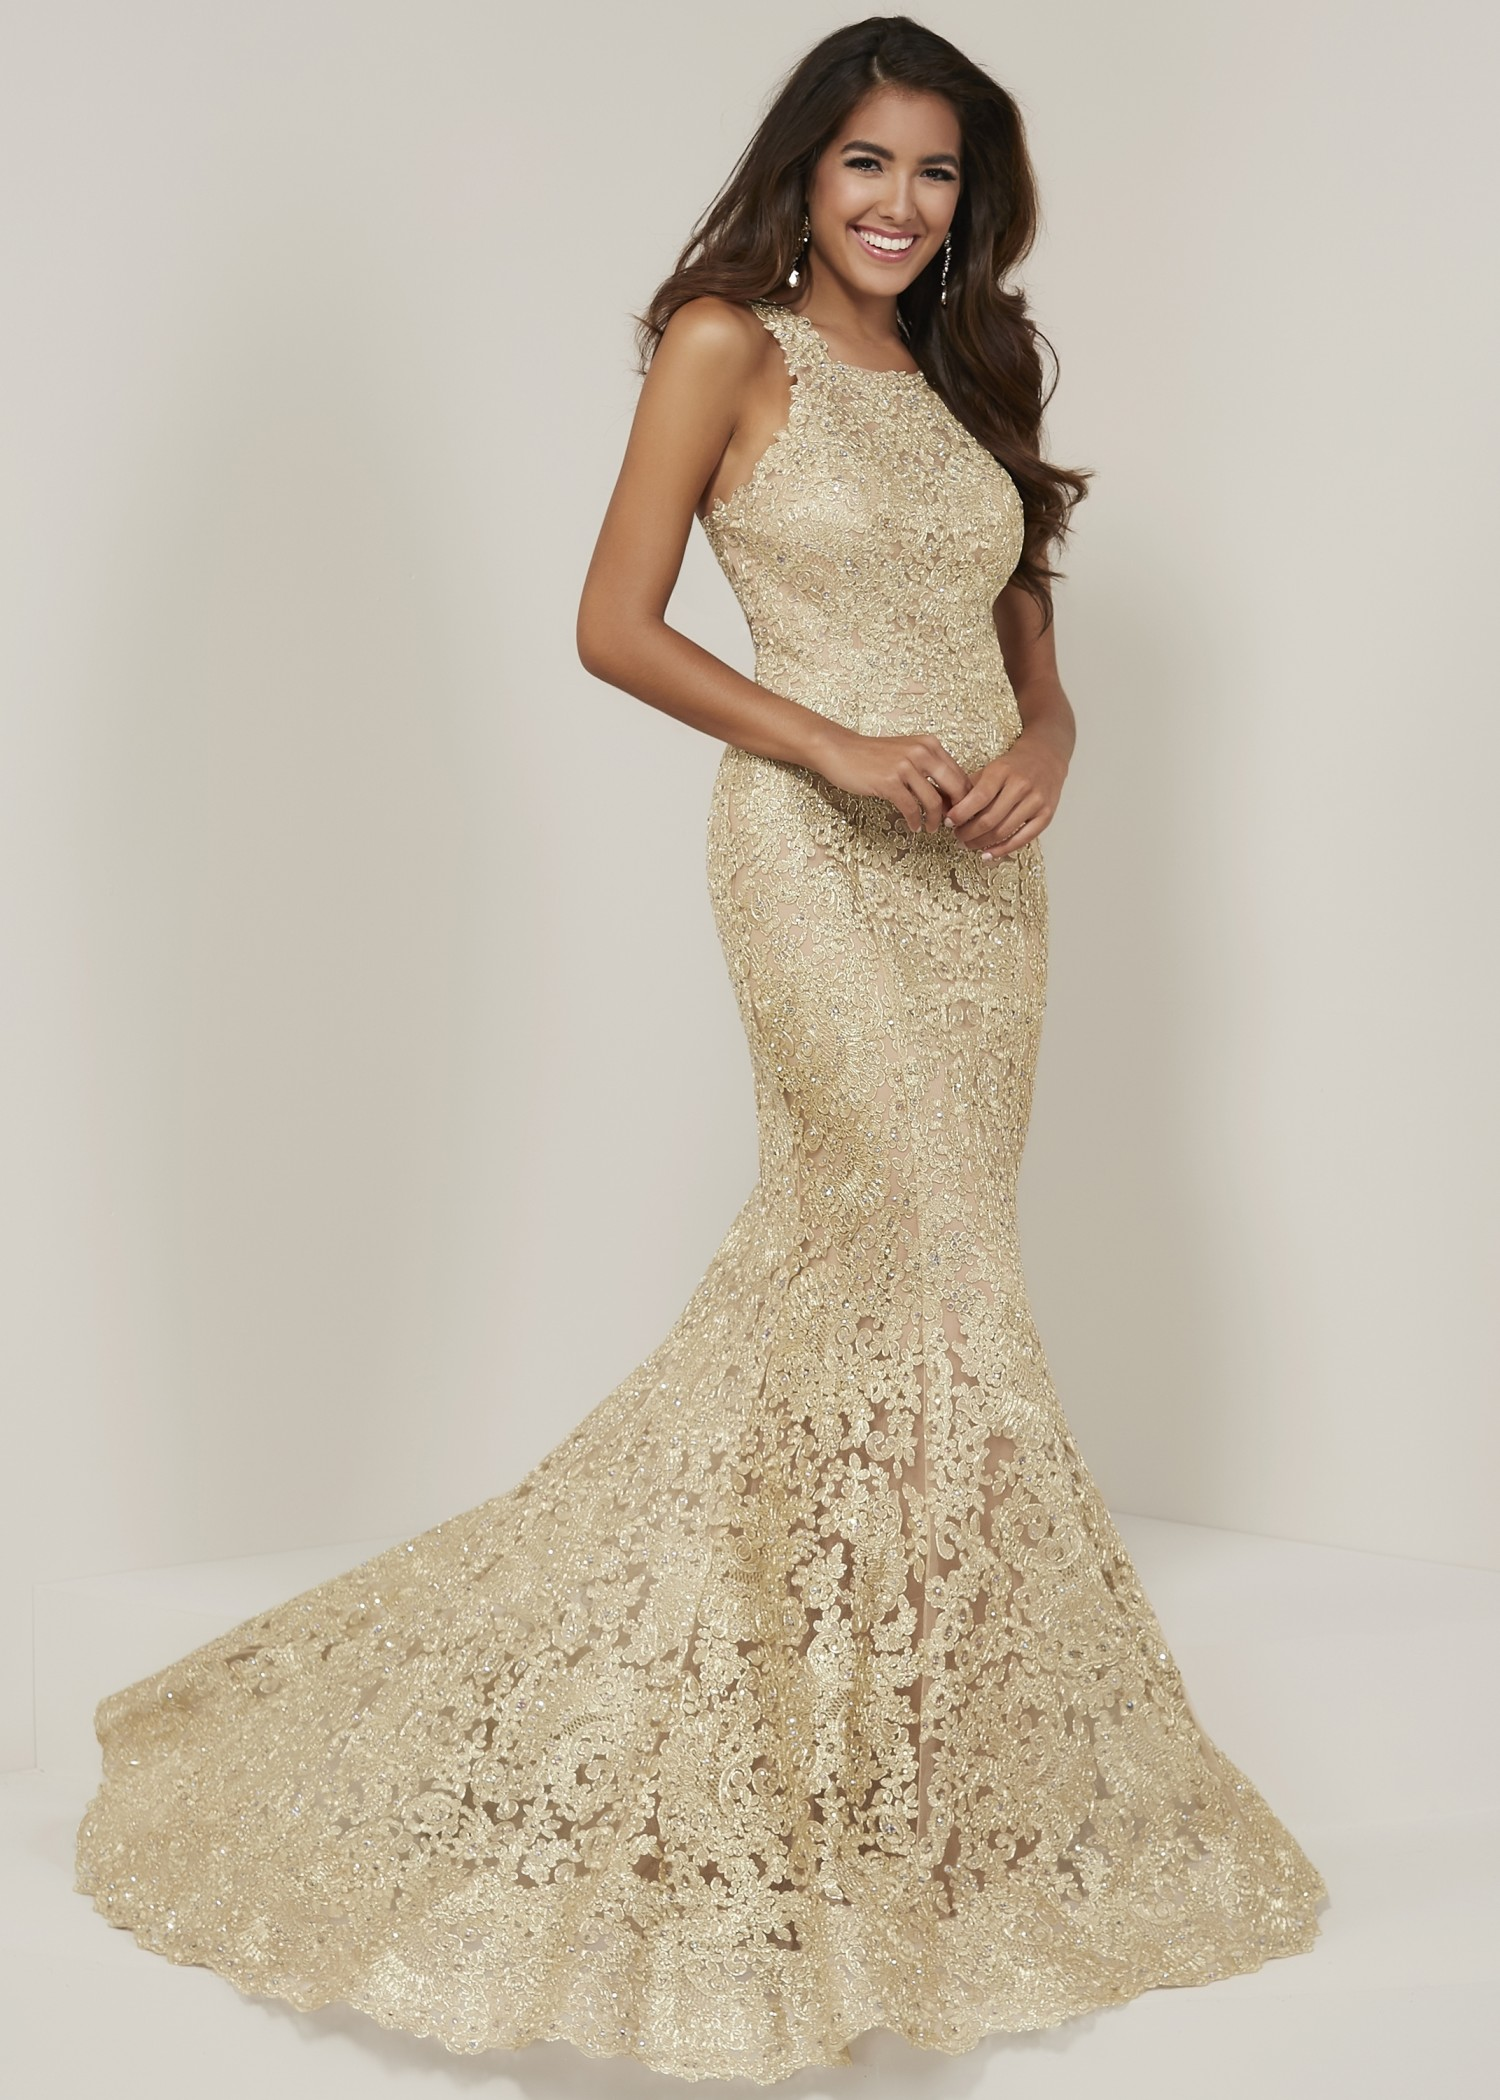 Tiffany Designs 16329 Lace Racerback Mermaid Gown